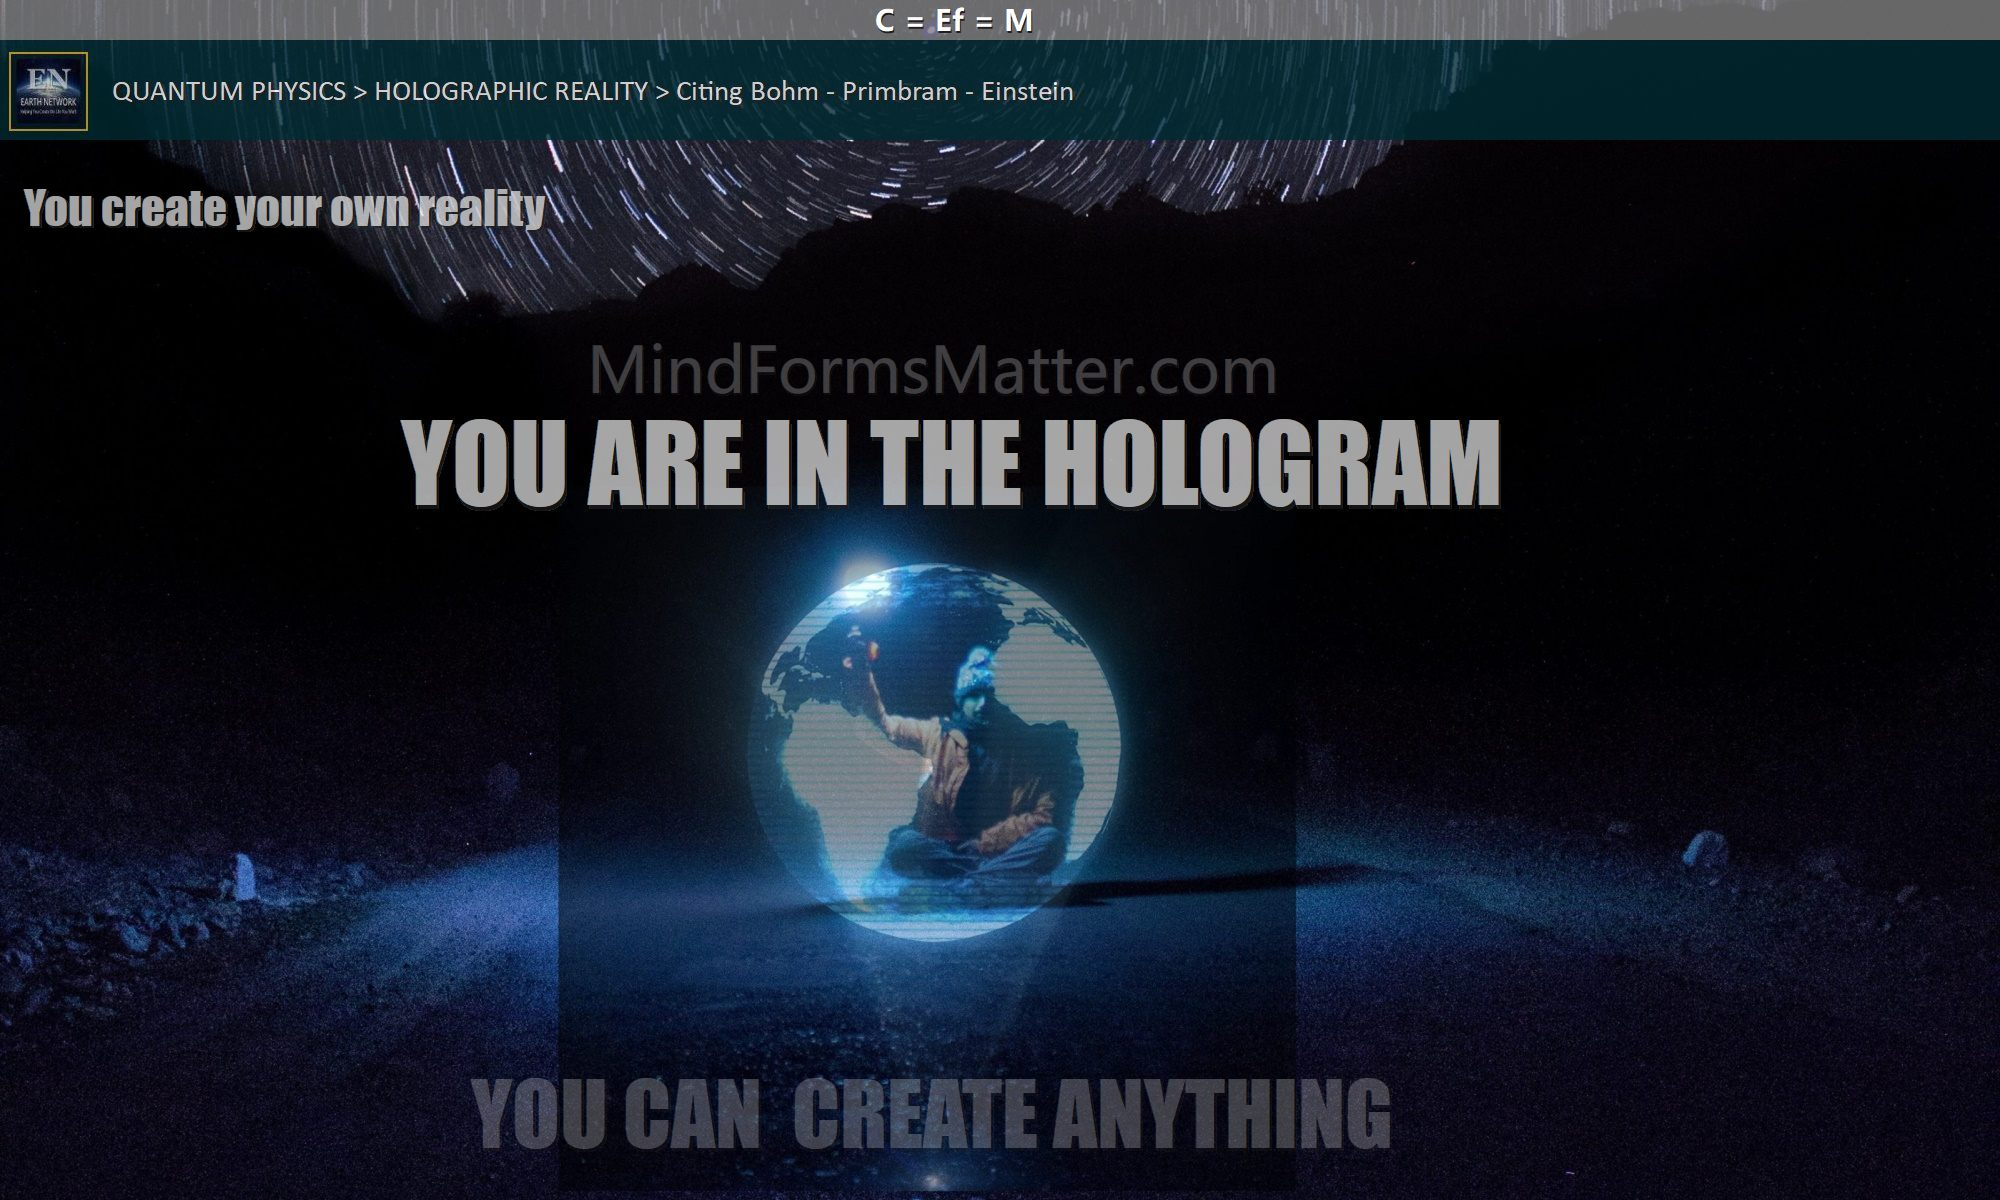 Your-mind-projects-brain-reality-you-are-in-the-hologram-a-new-science-david-bohm-holographic-universe-picture